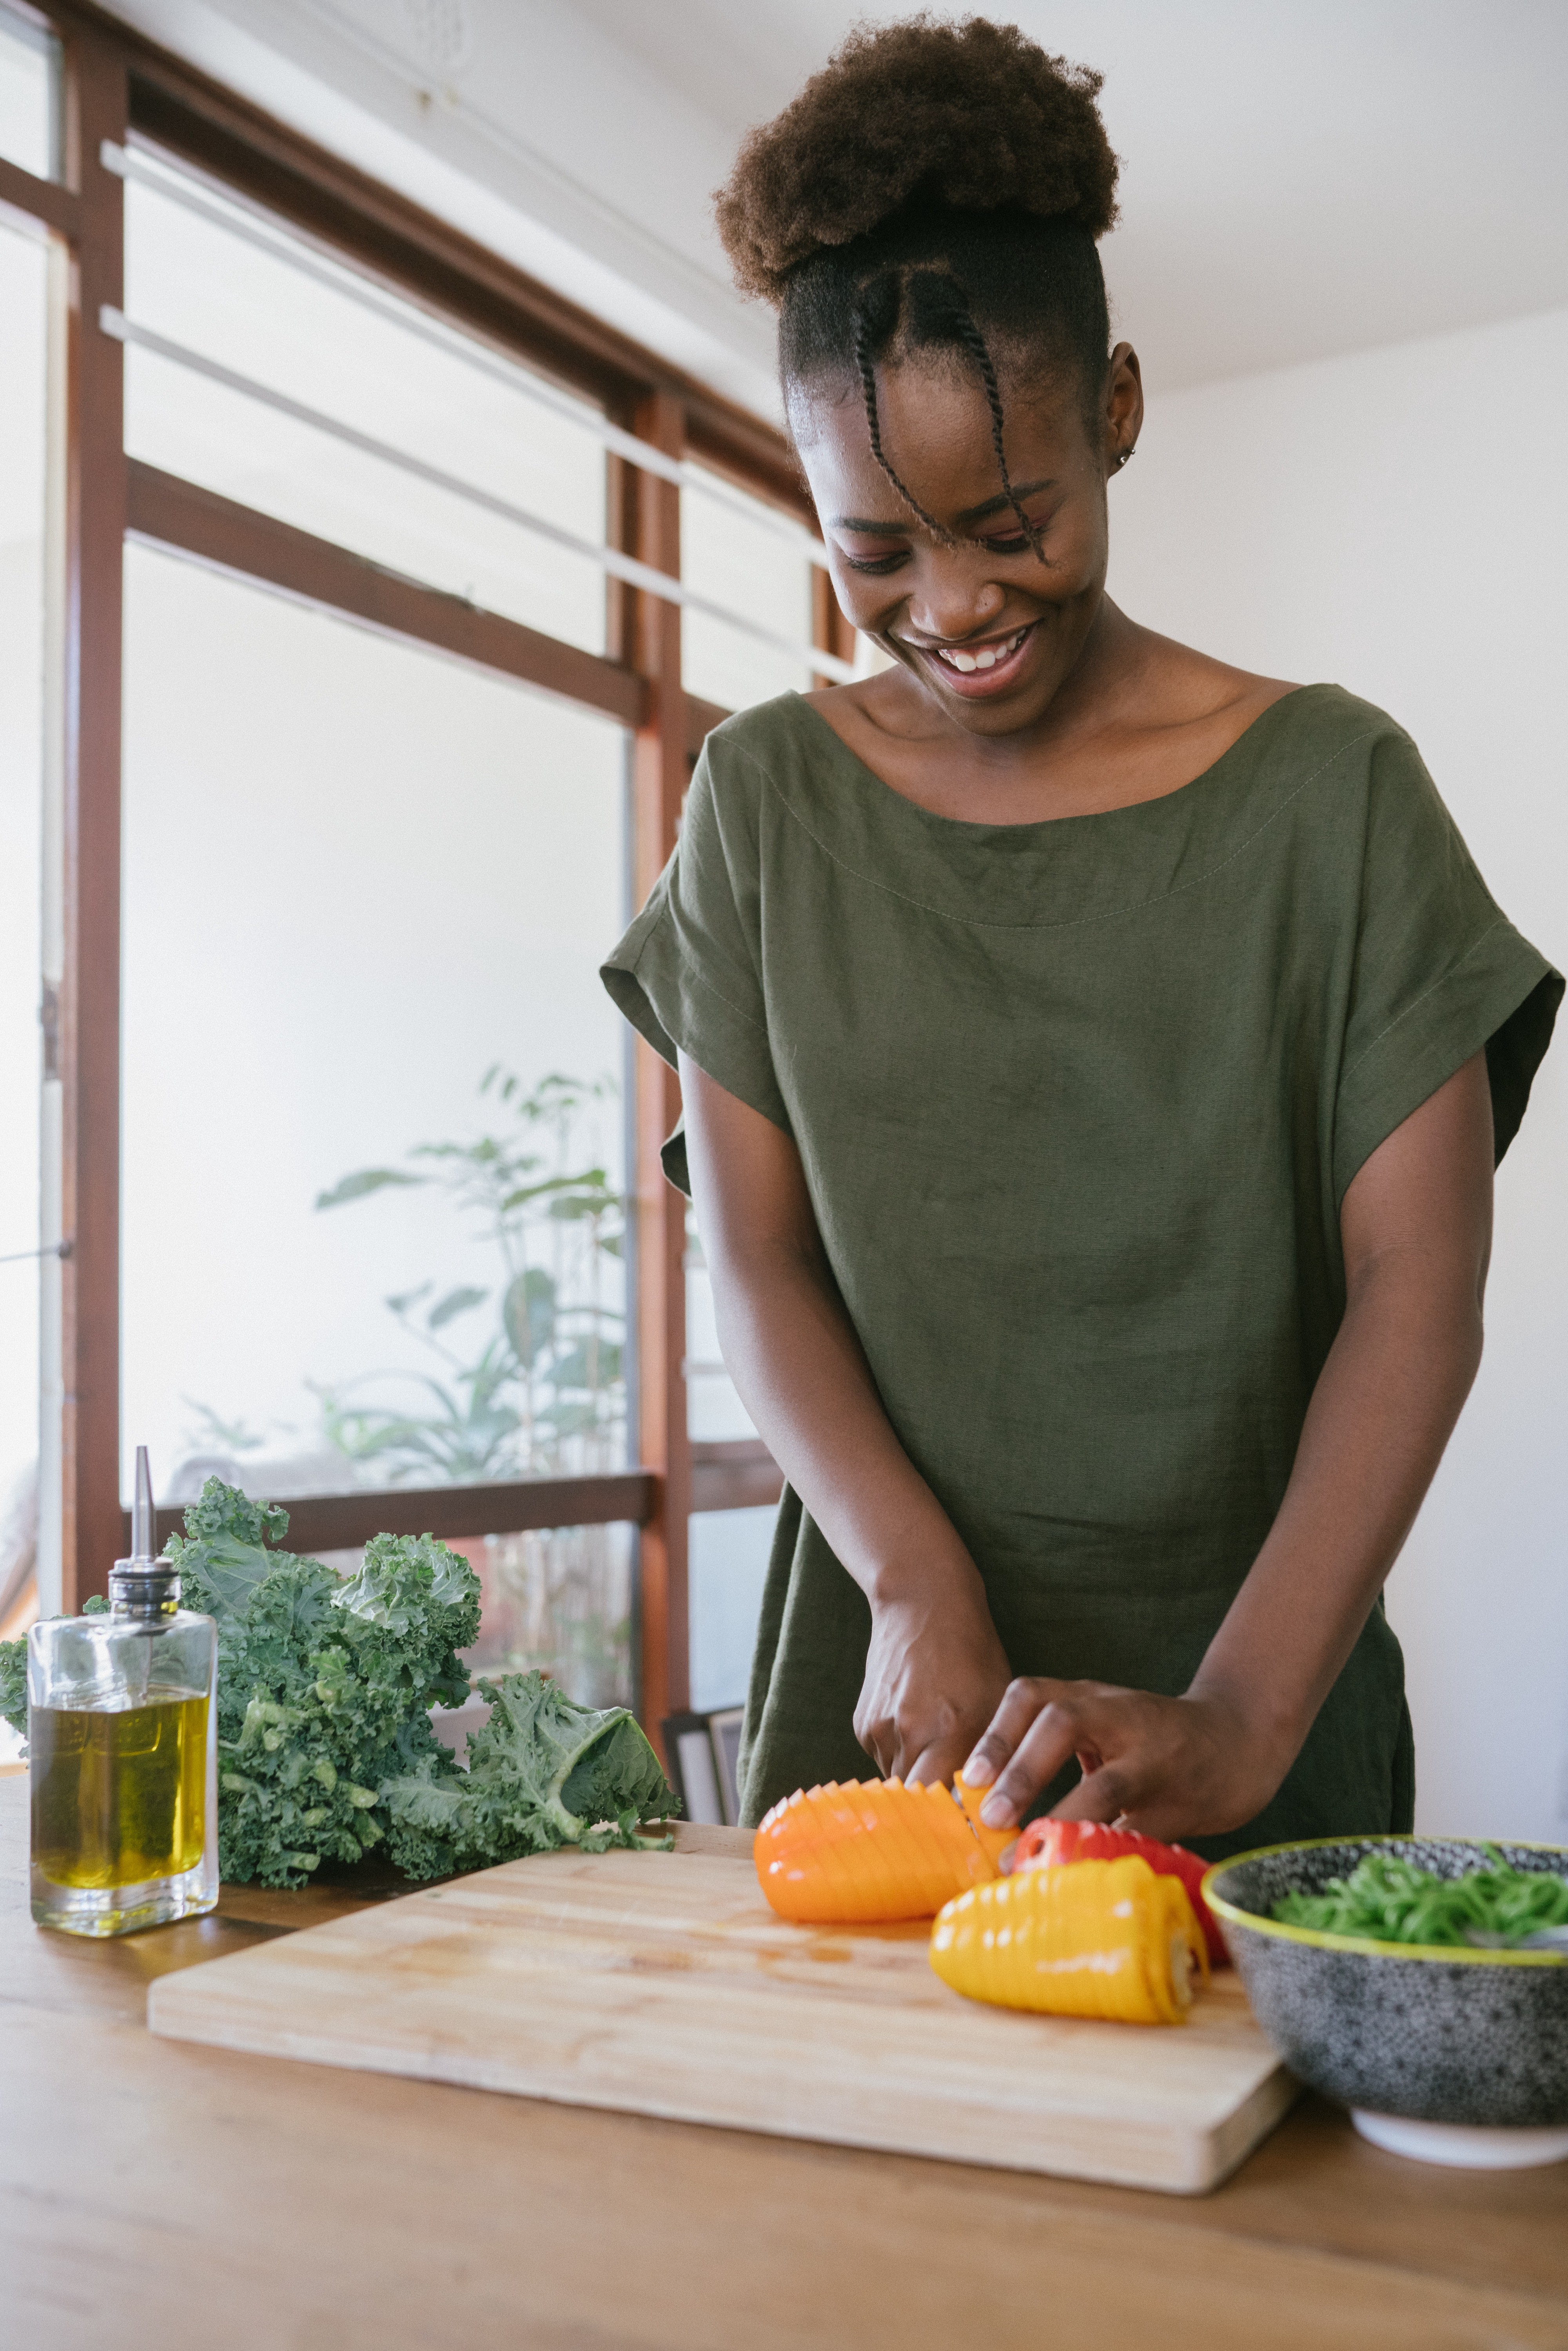 Smiling woman slicing peppers on cutting board